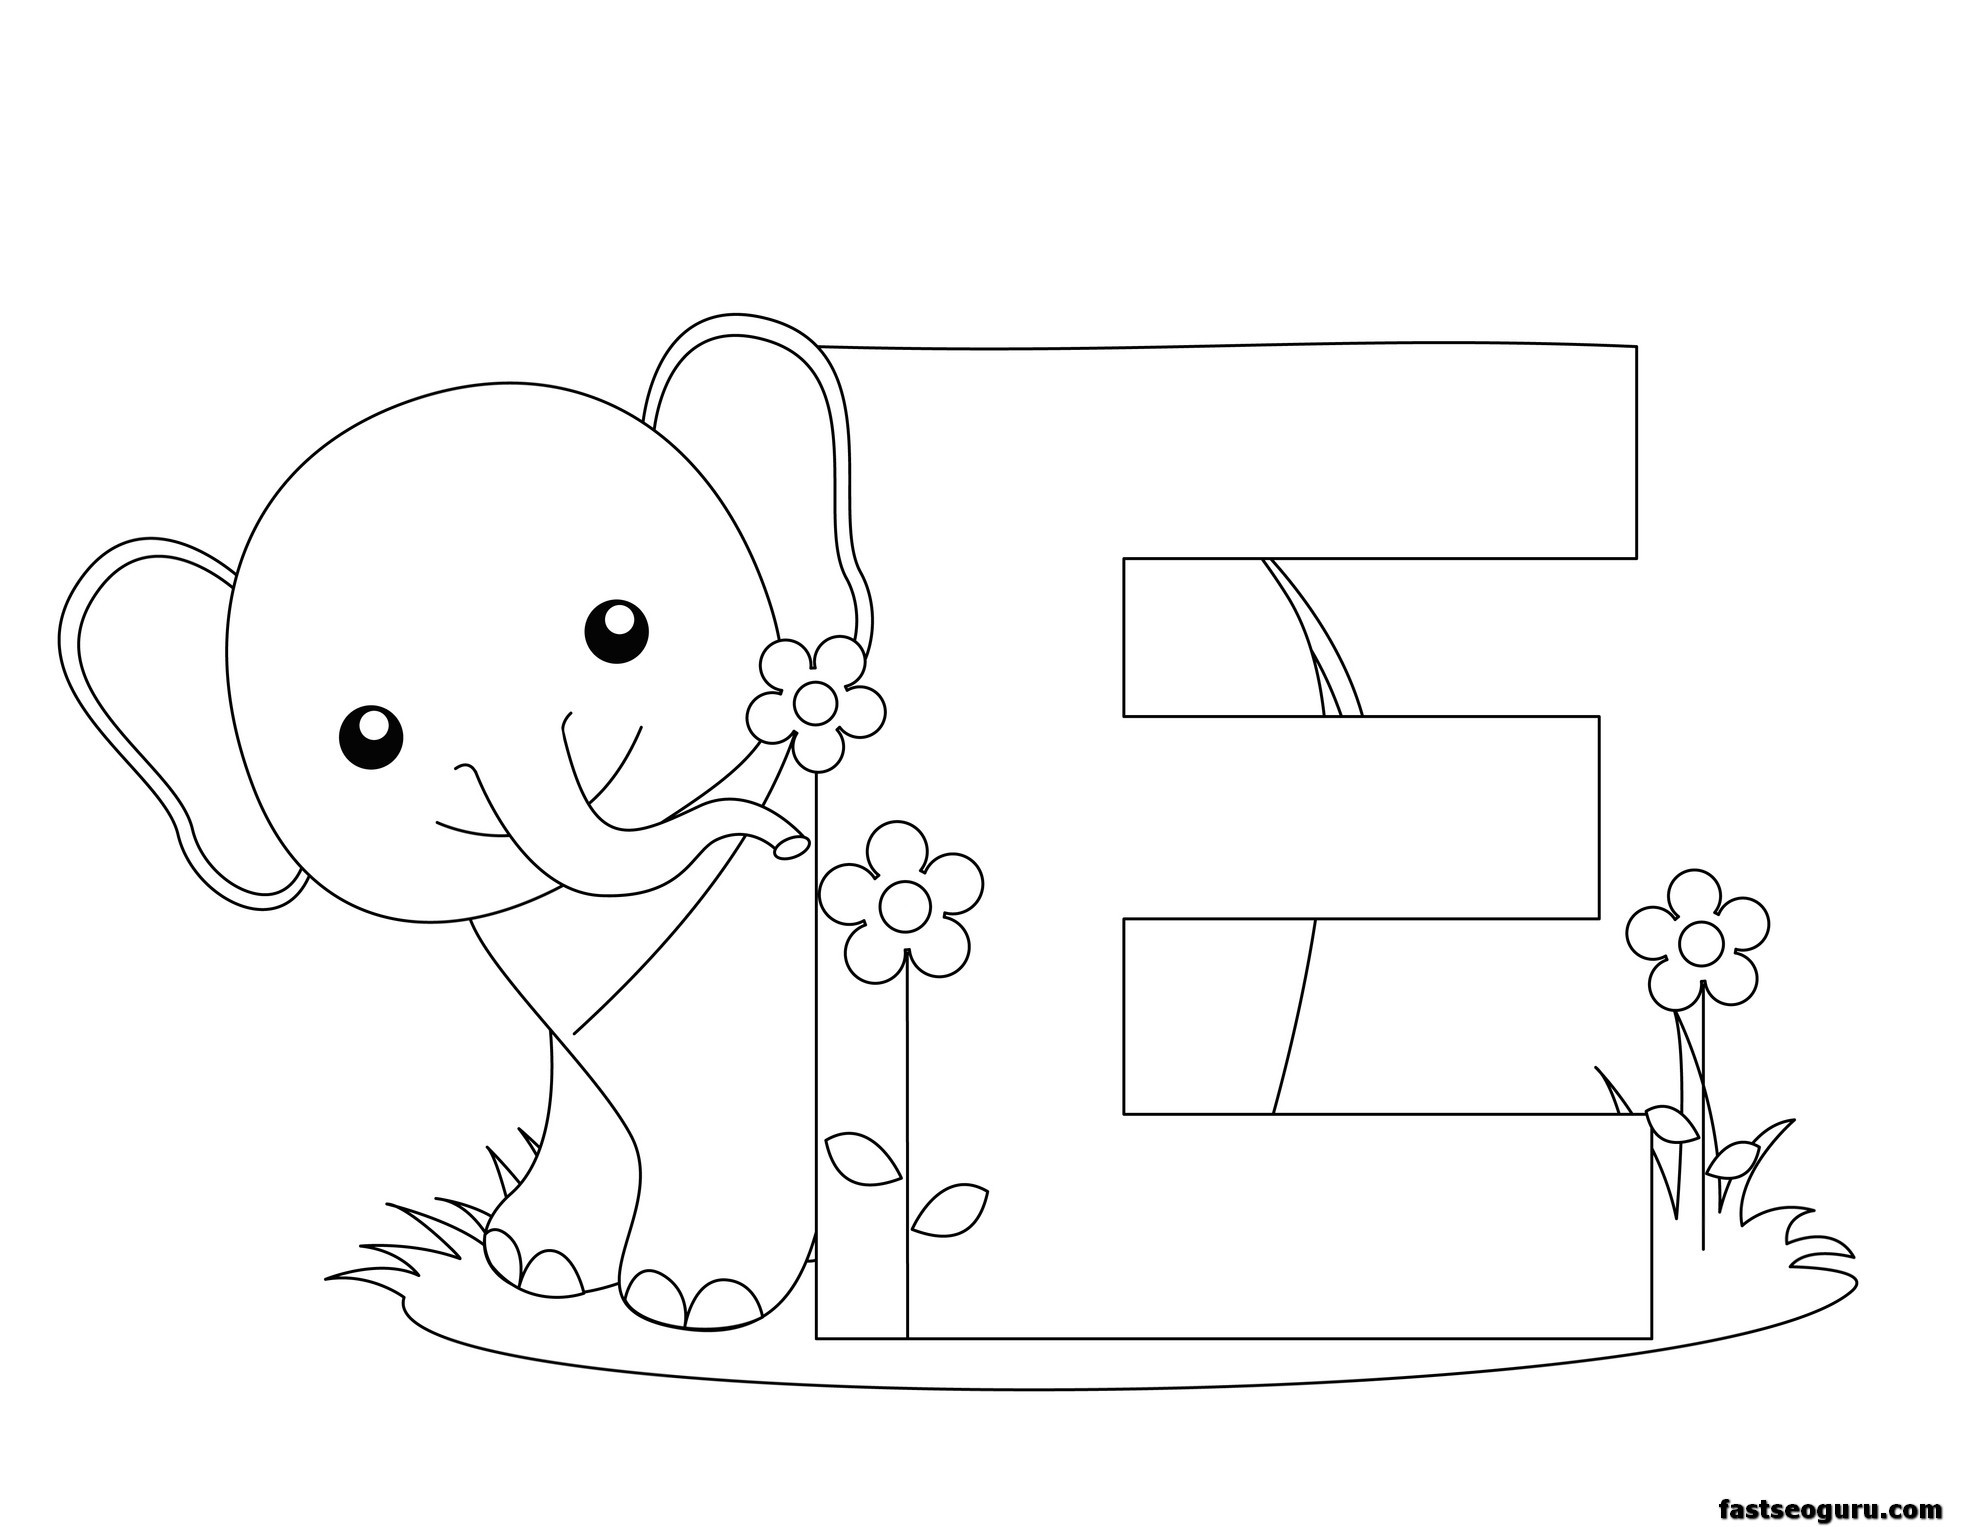 e coloring pages - photo #32